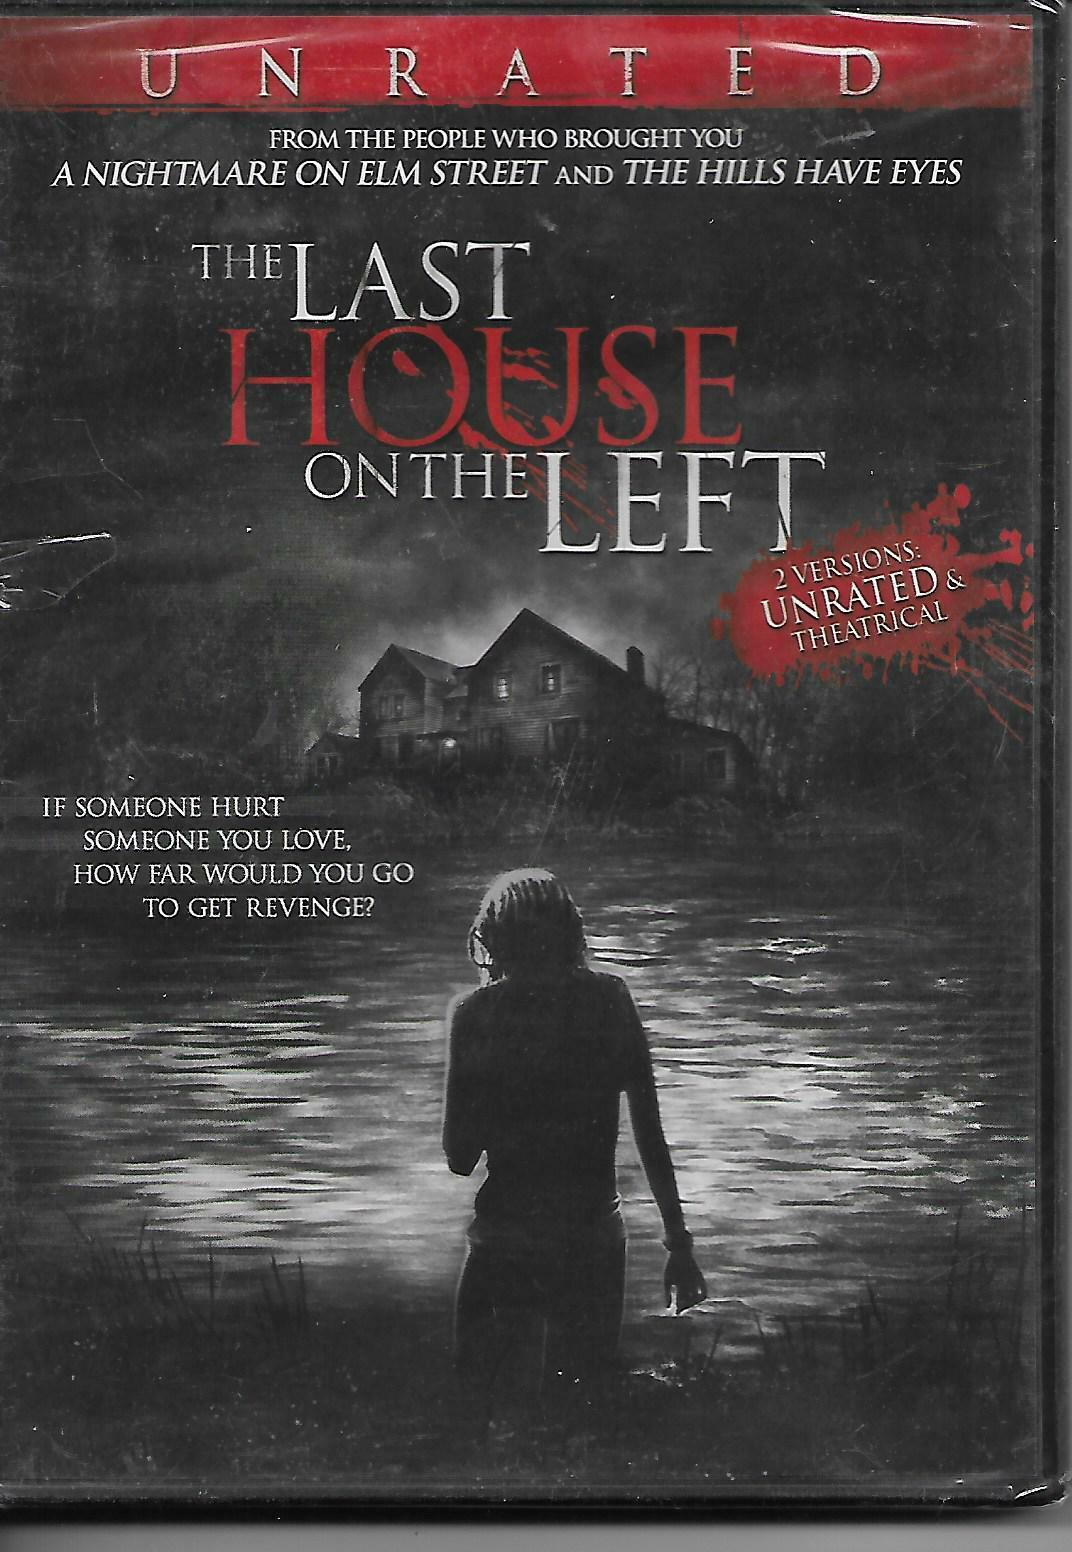 THE LAST HOUSE ON THE LEFT Unrated And Theatrical Versions DVD New, Sealed - $4.99